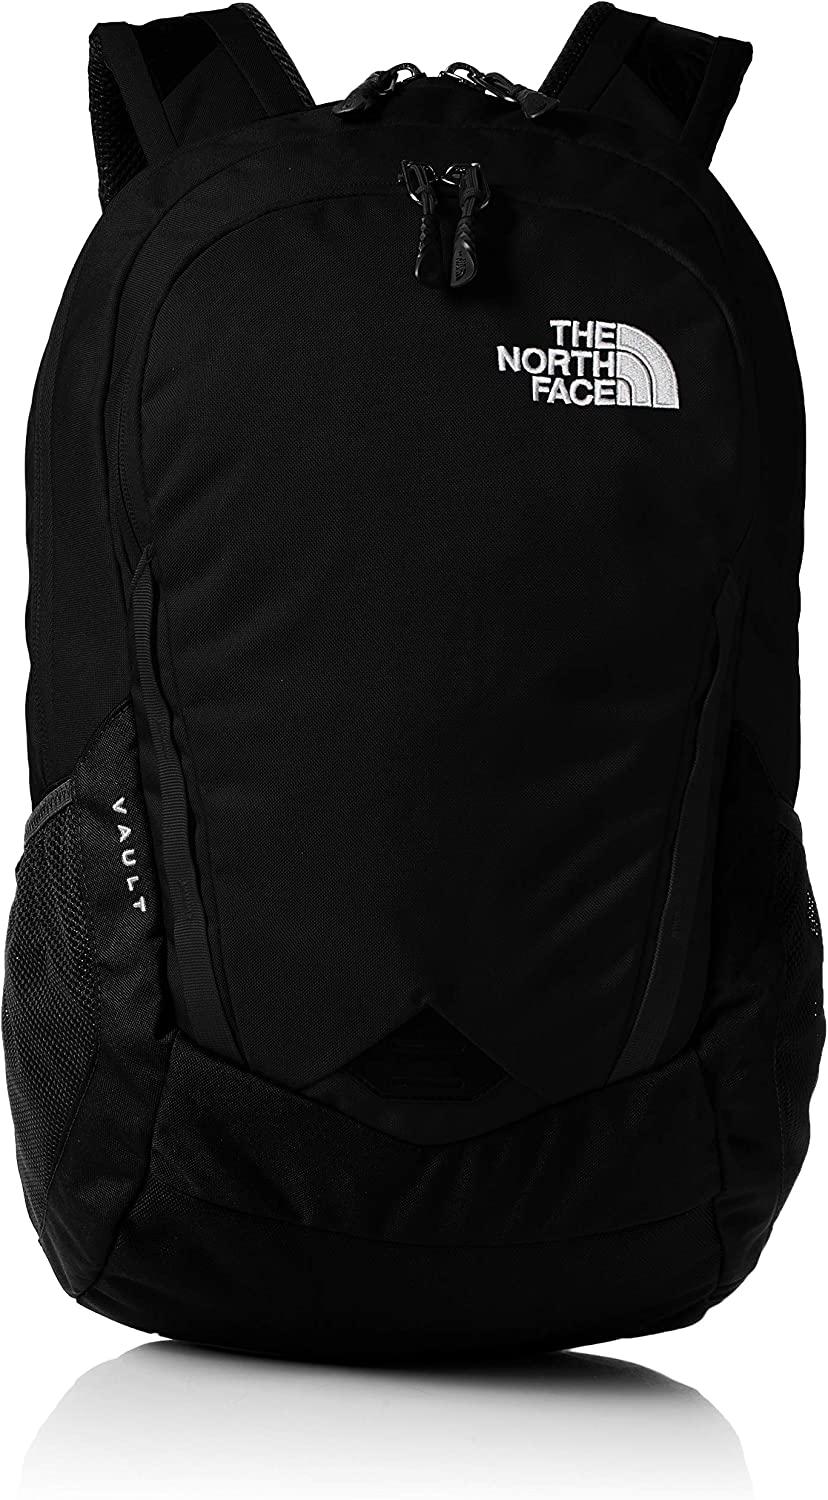 Mochila The North Face modelo Vault